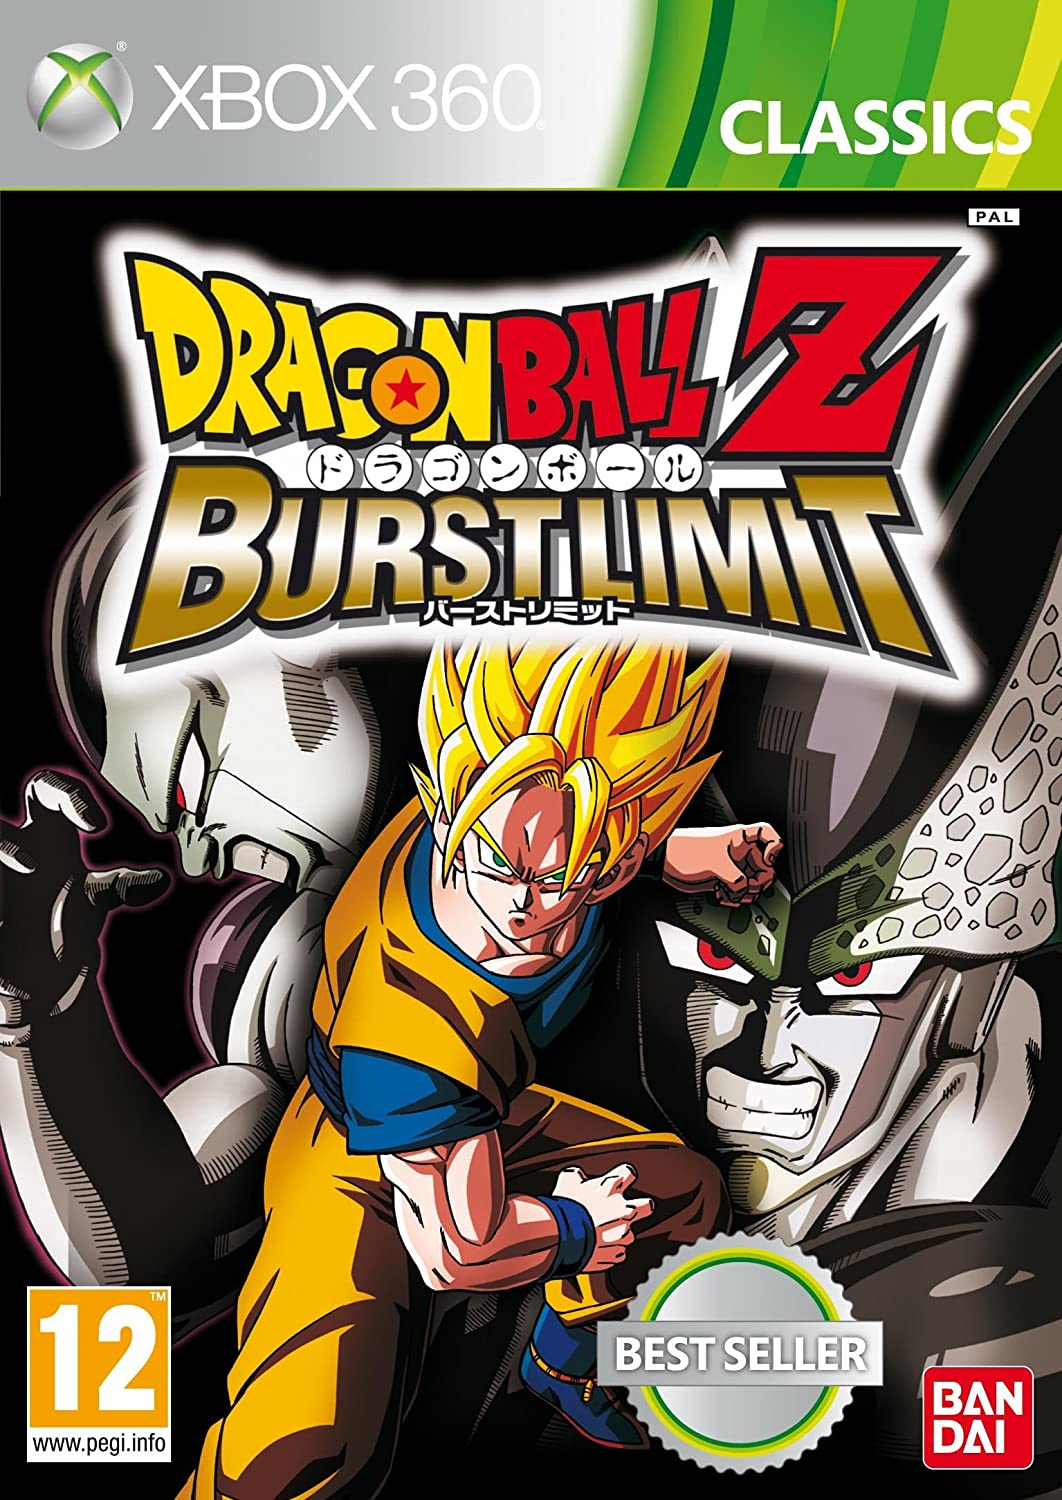 Download Dragon Ball Z Burst Limit Ps3 Iso Tool